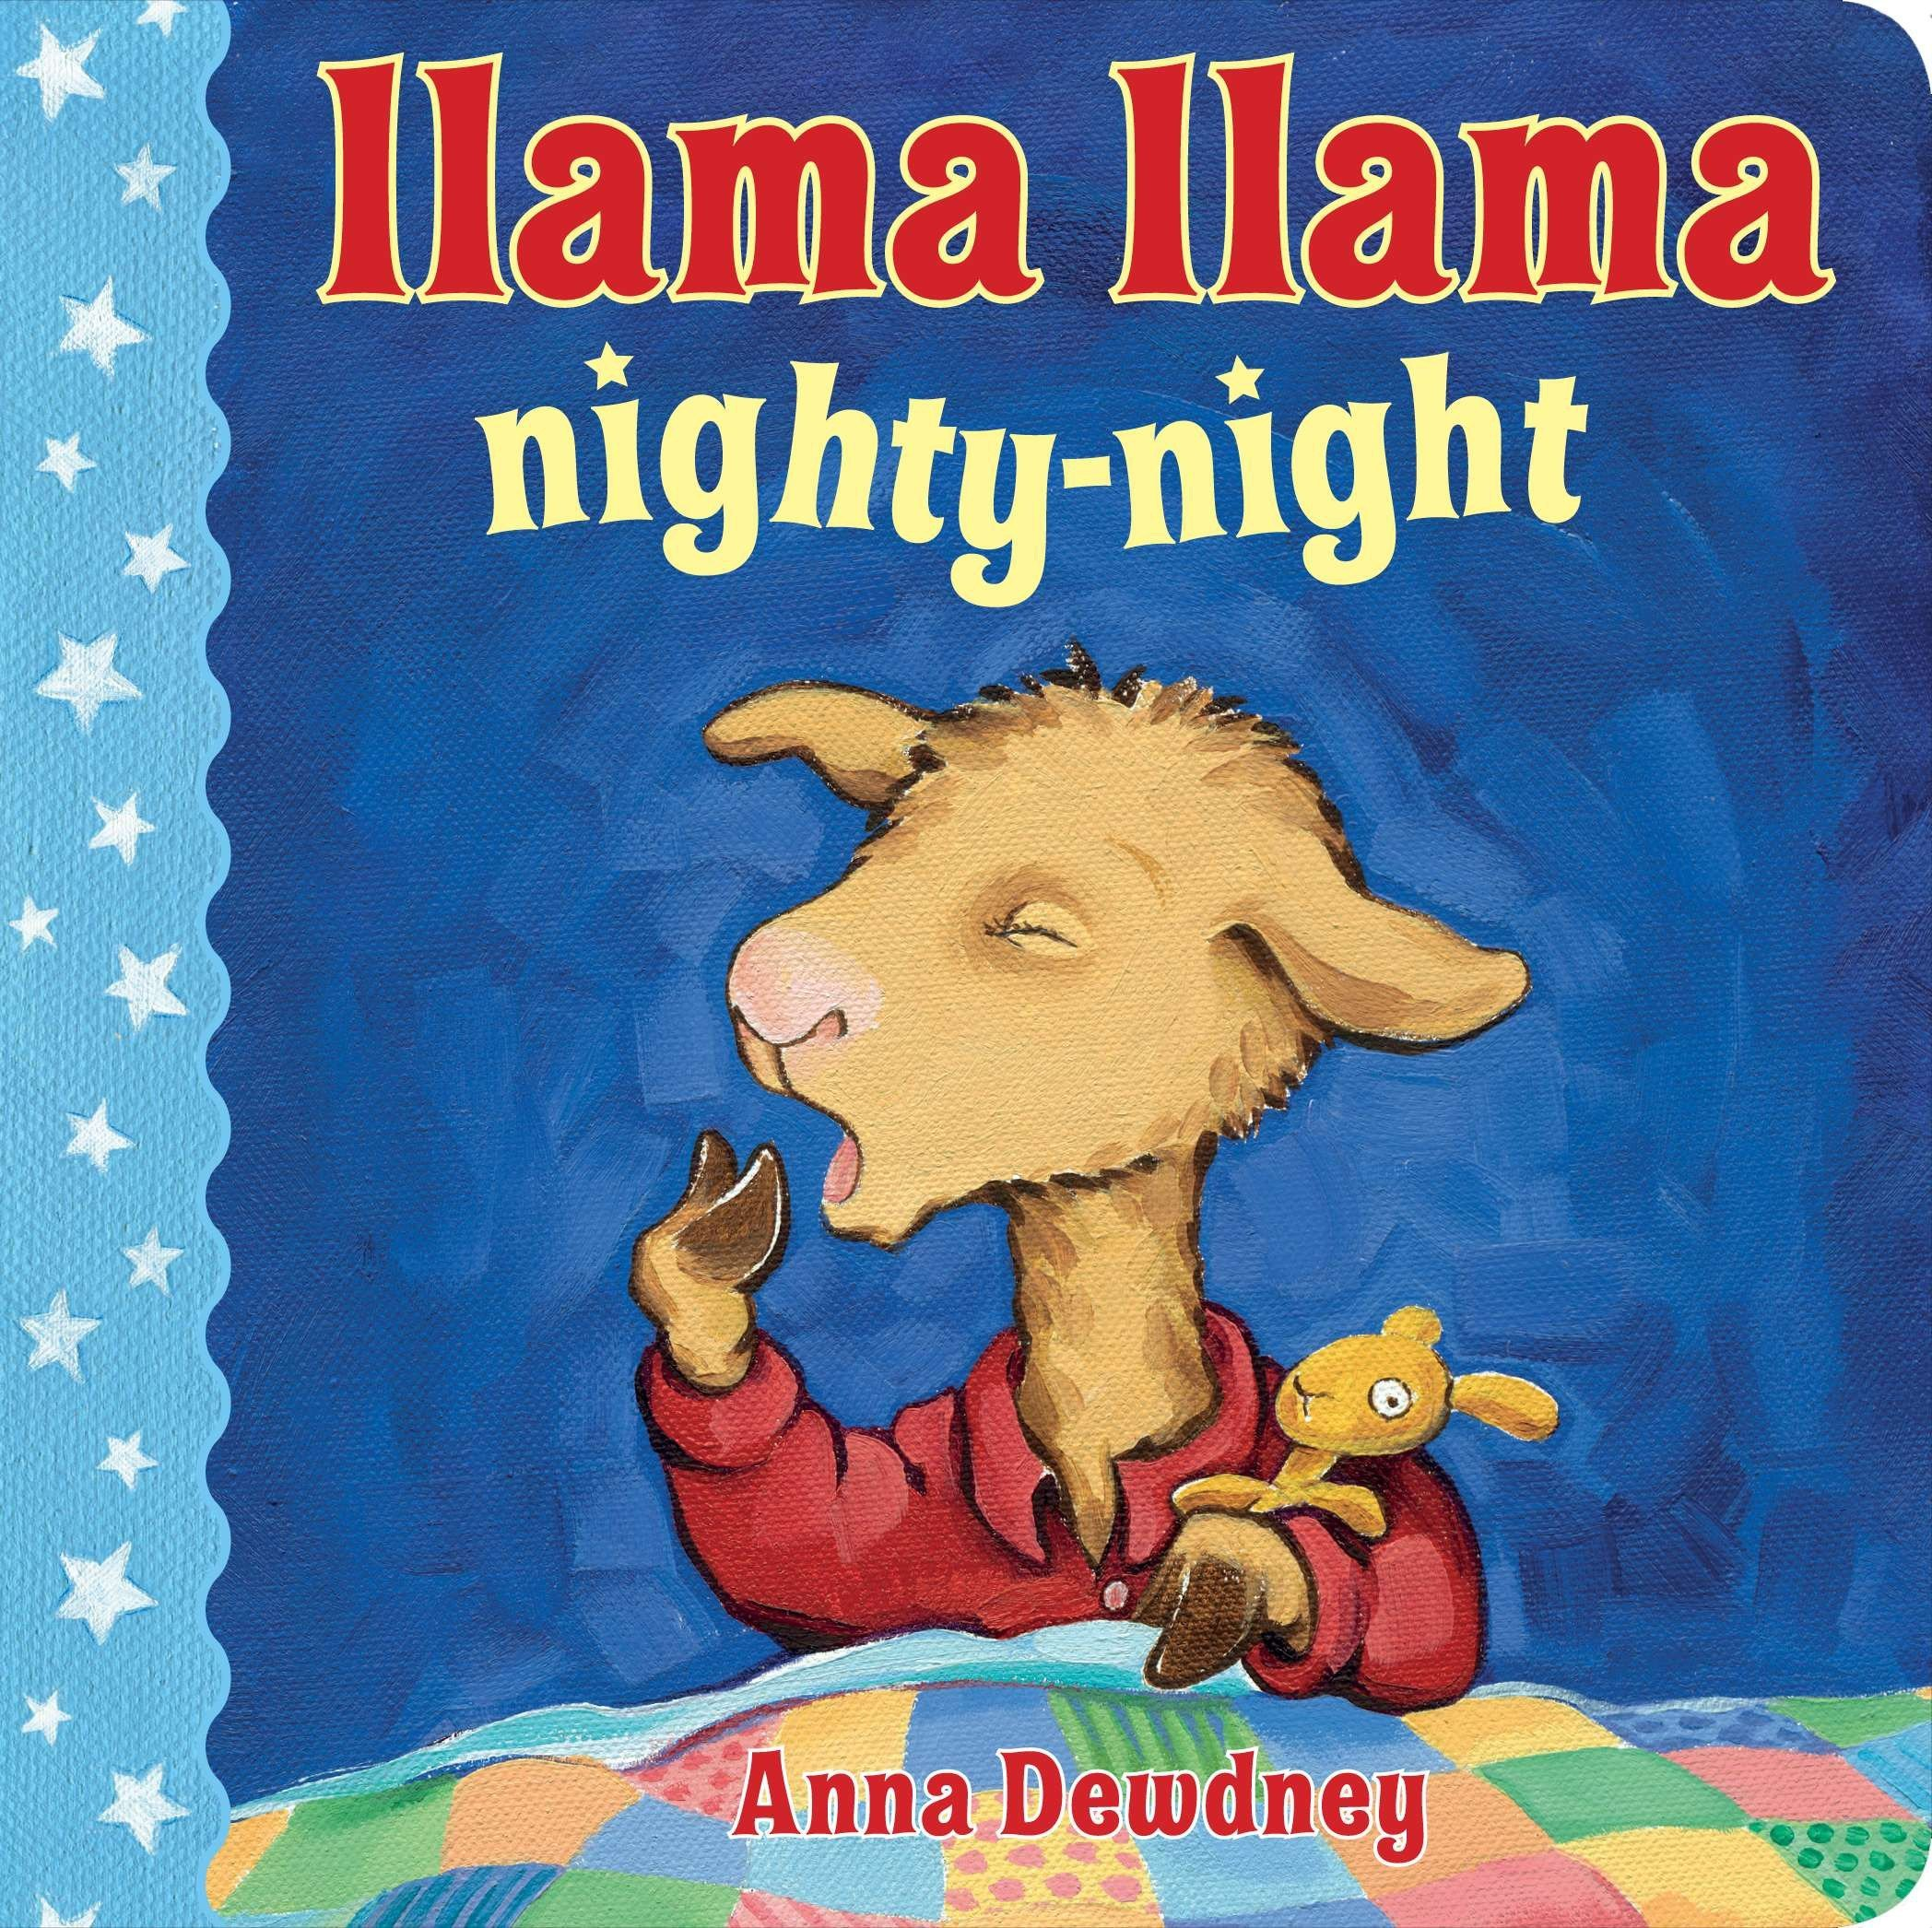 6c604d636f Llama Llama Nighty-Night  Anna Dewdney  9780670013272  Amazon.com  Books